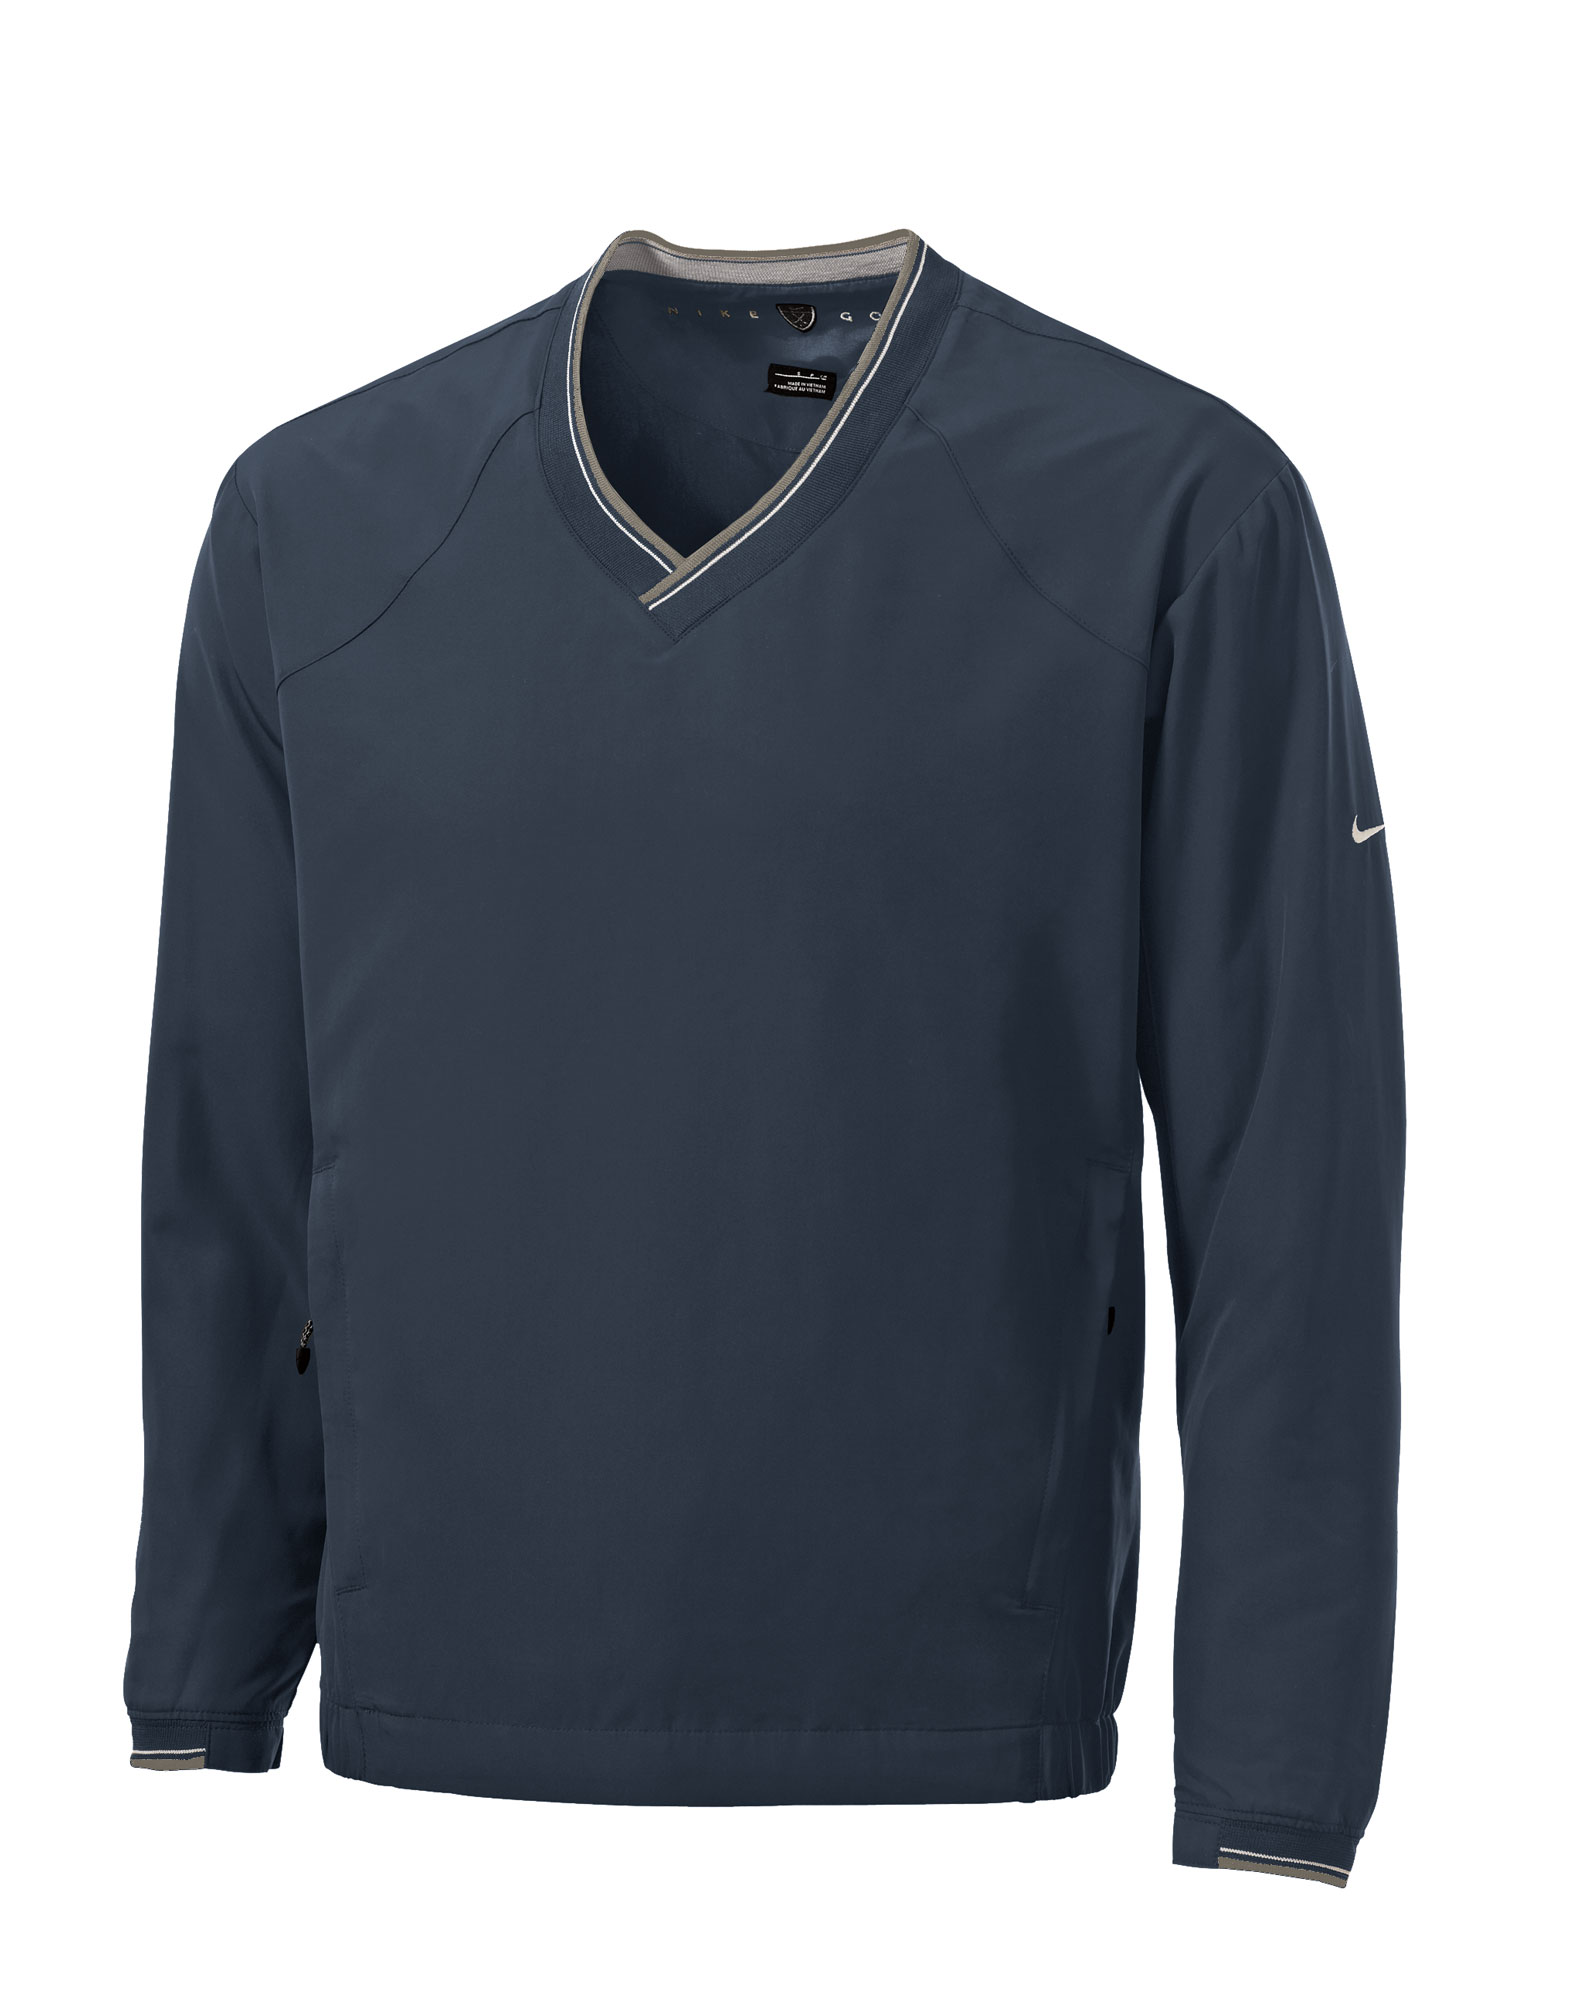 Custom Nike Mens V-Neck Windshirt w/Trimmed Collar